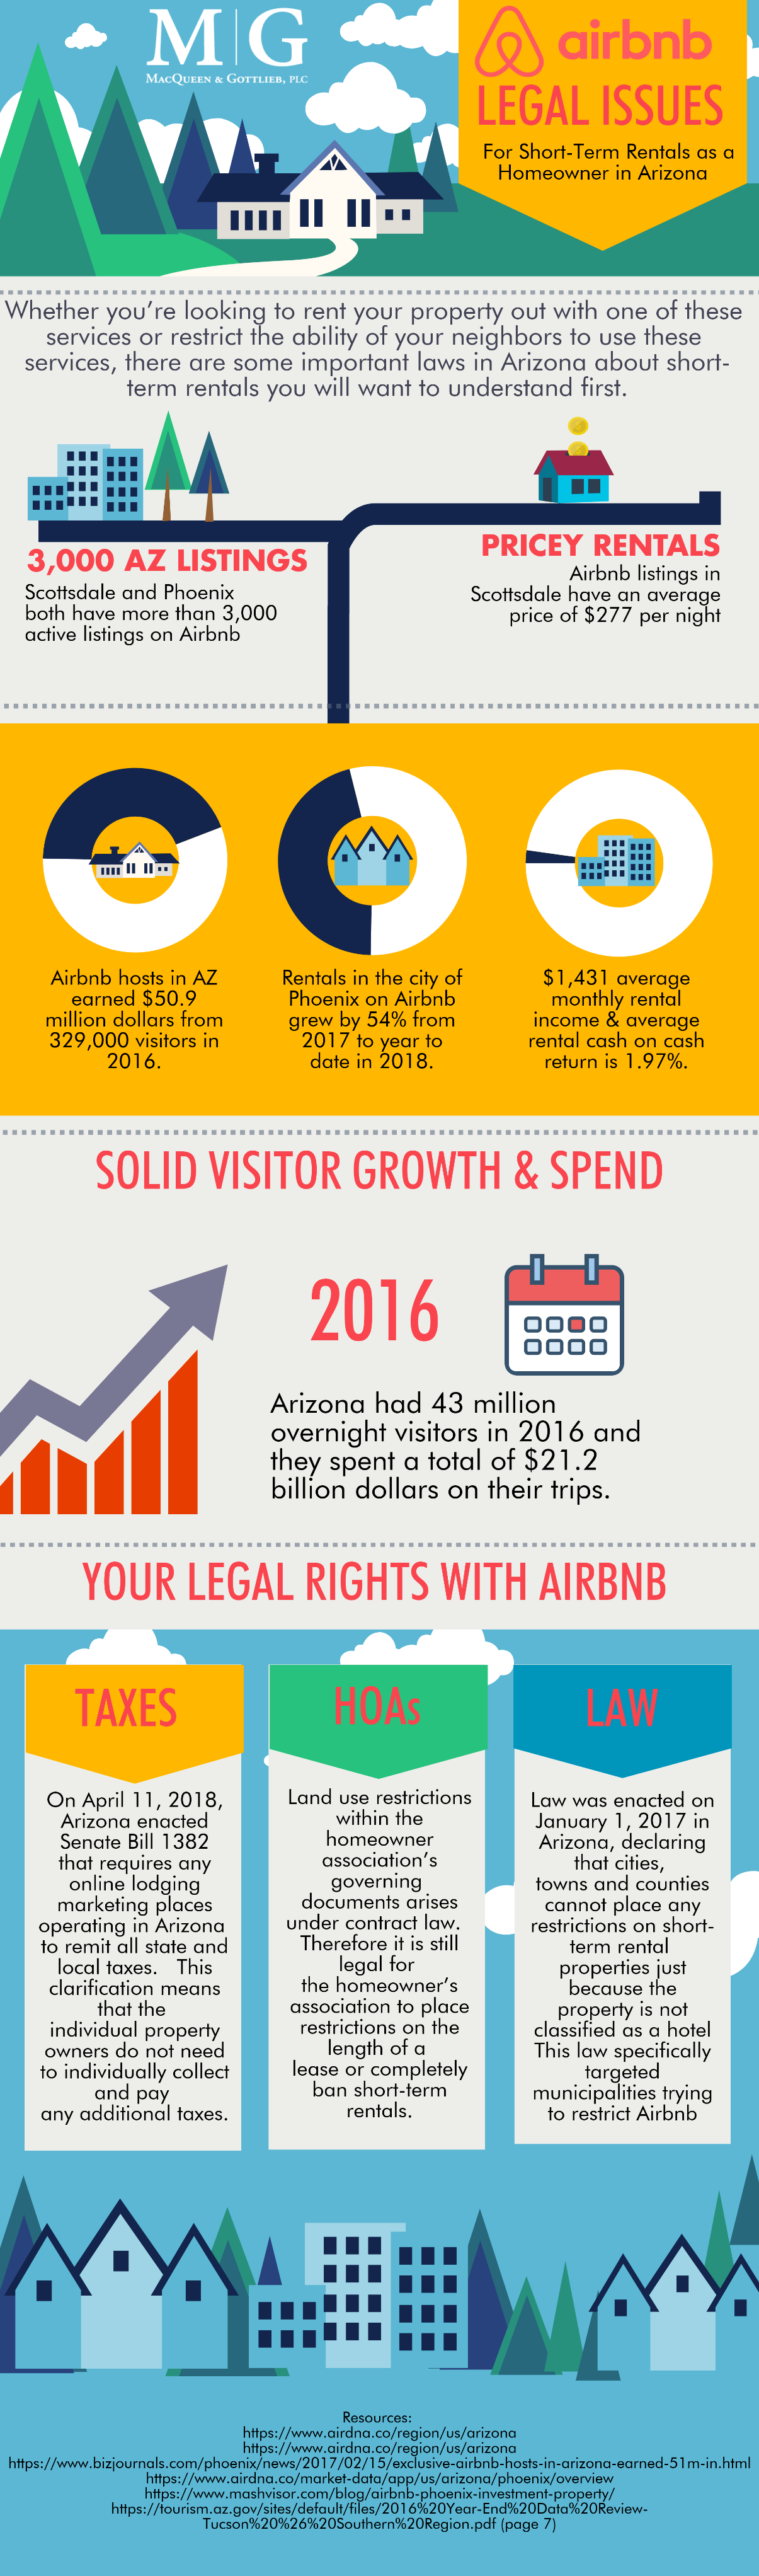 airbnb rental stats and laws